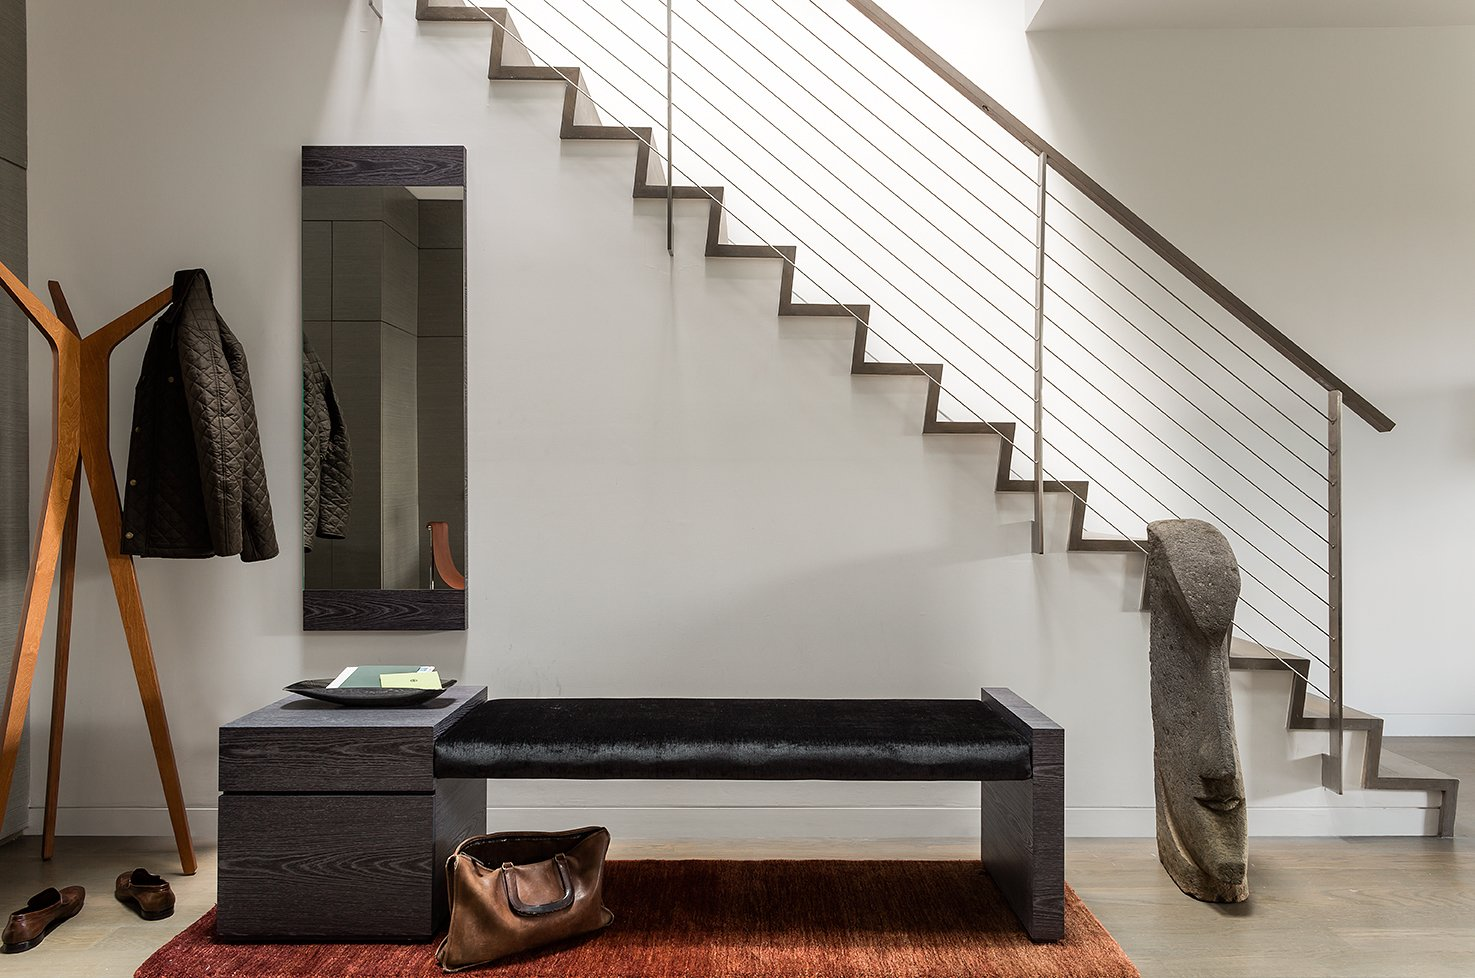 """""""The entire house is unified with oak flooring with a custom warm gray stain. This material is repeated on the stair and atrium handrails,"""" Walker said. The entryway's bench has a custom Tabu Caleidolegno veneered wood base. The upholstered bench seat, which uses black Kravet fabric, was designed by Ruhl Walker Architects and made by Herrick & White.  Back Bay by Kelly Dawson"""